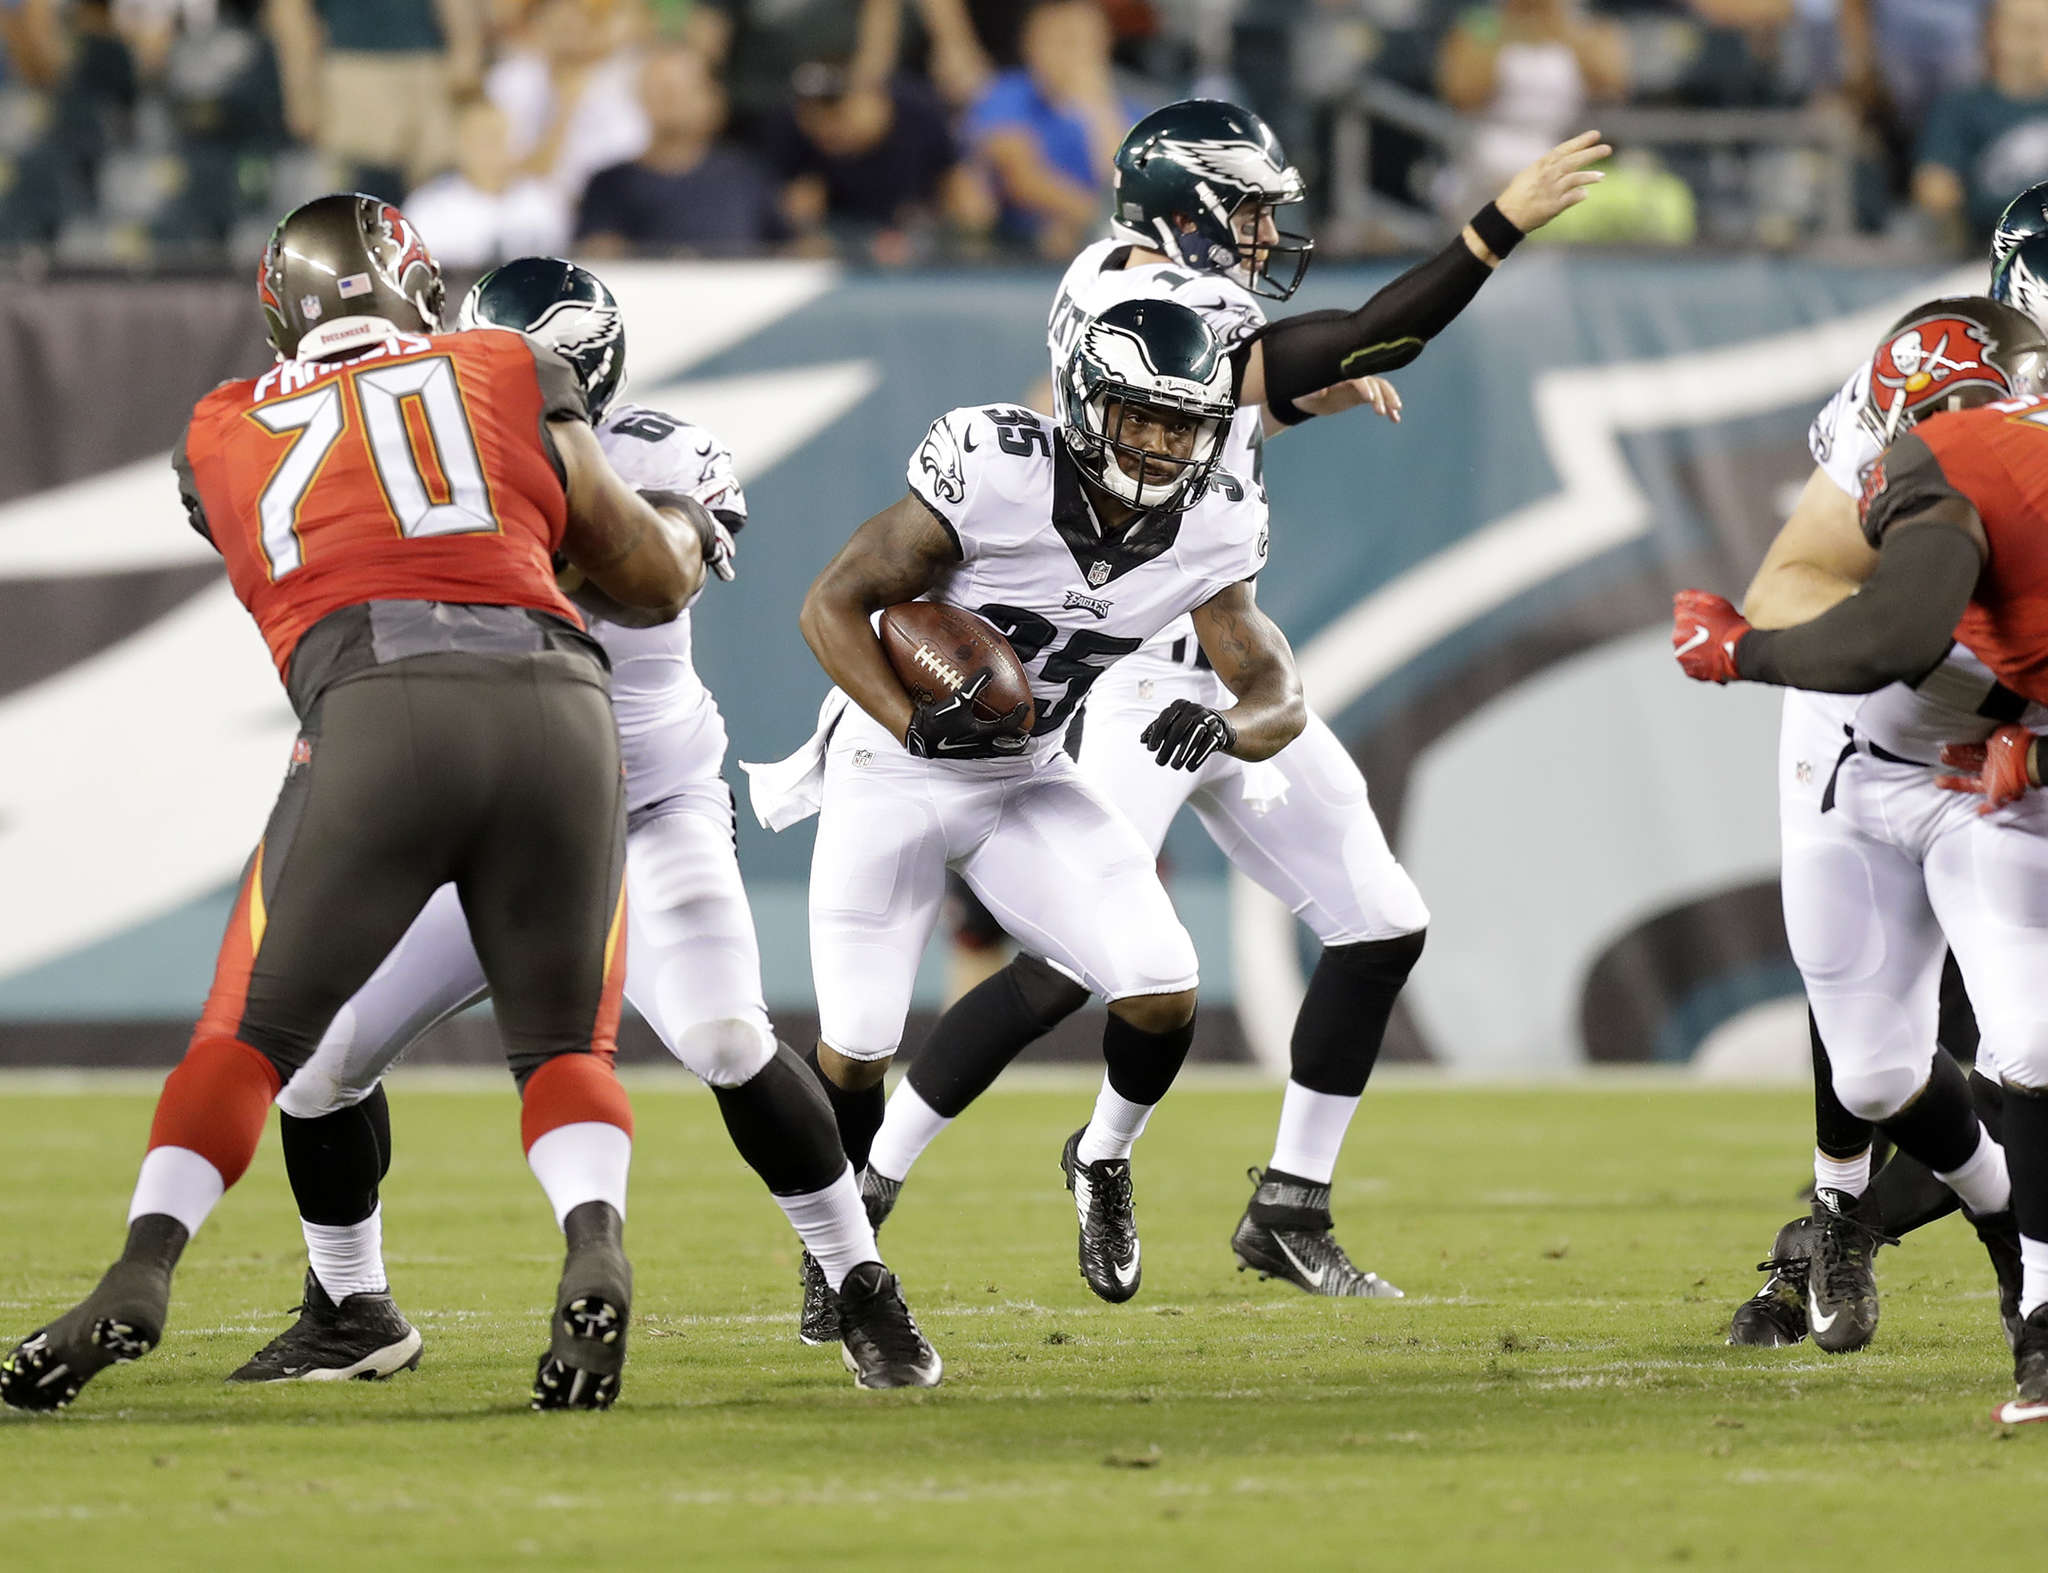 Eagles´ Cedric O´Neal tries to elude Buccaneers´ defenders in third quarter.